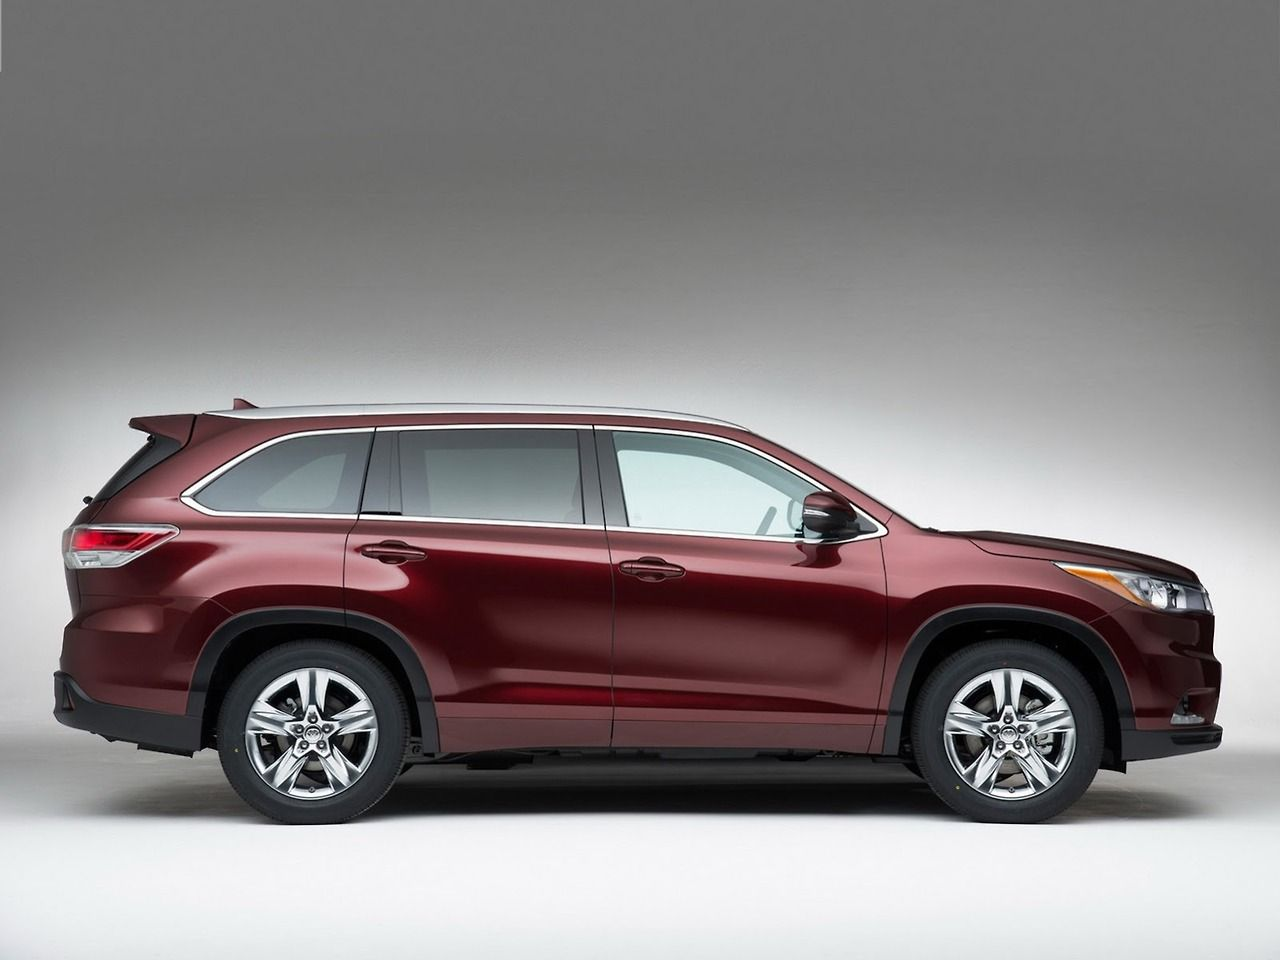 2014 Toyota Highlander 7 Seater Crossover At Cars And Trucks